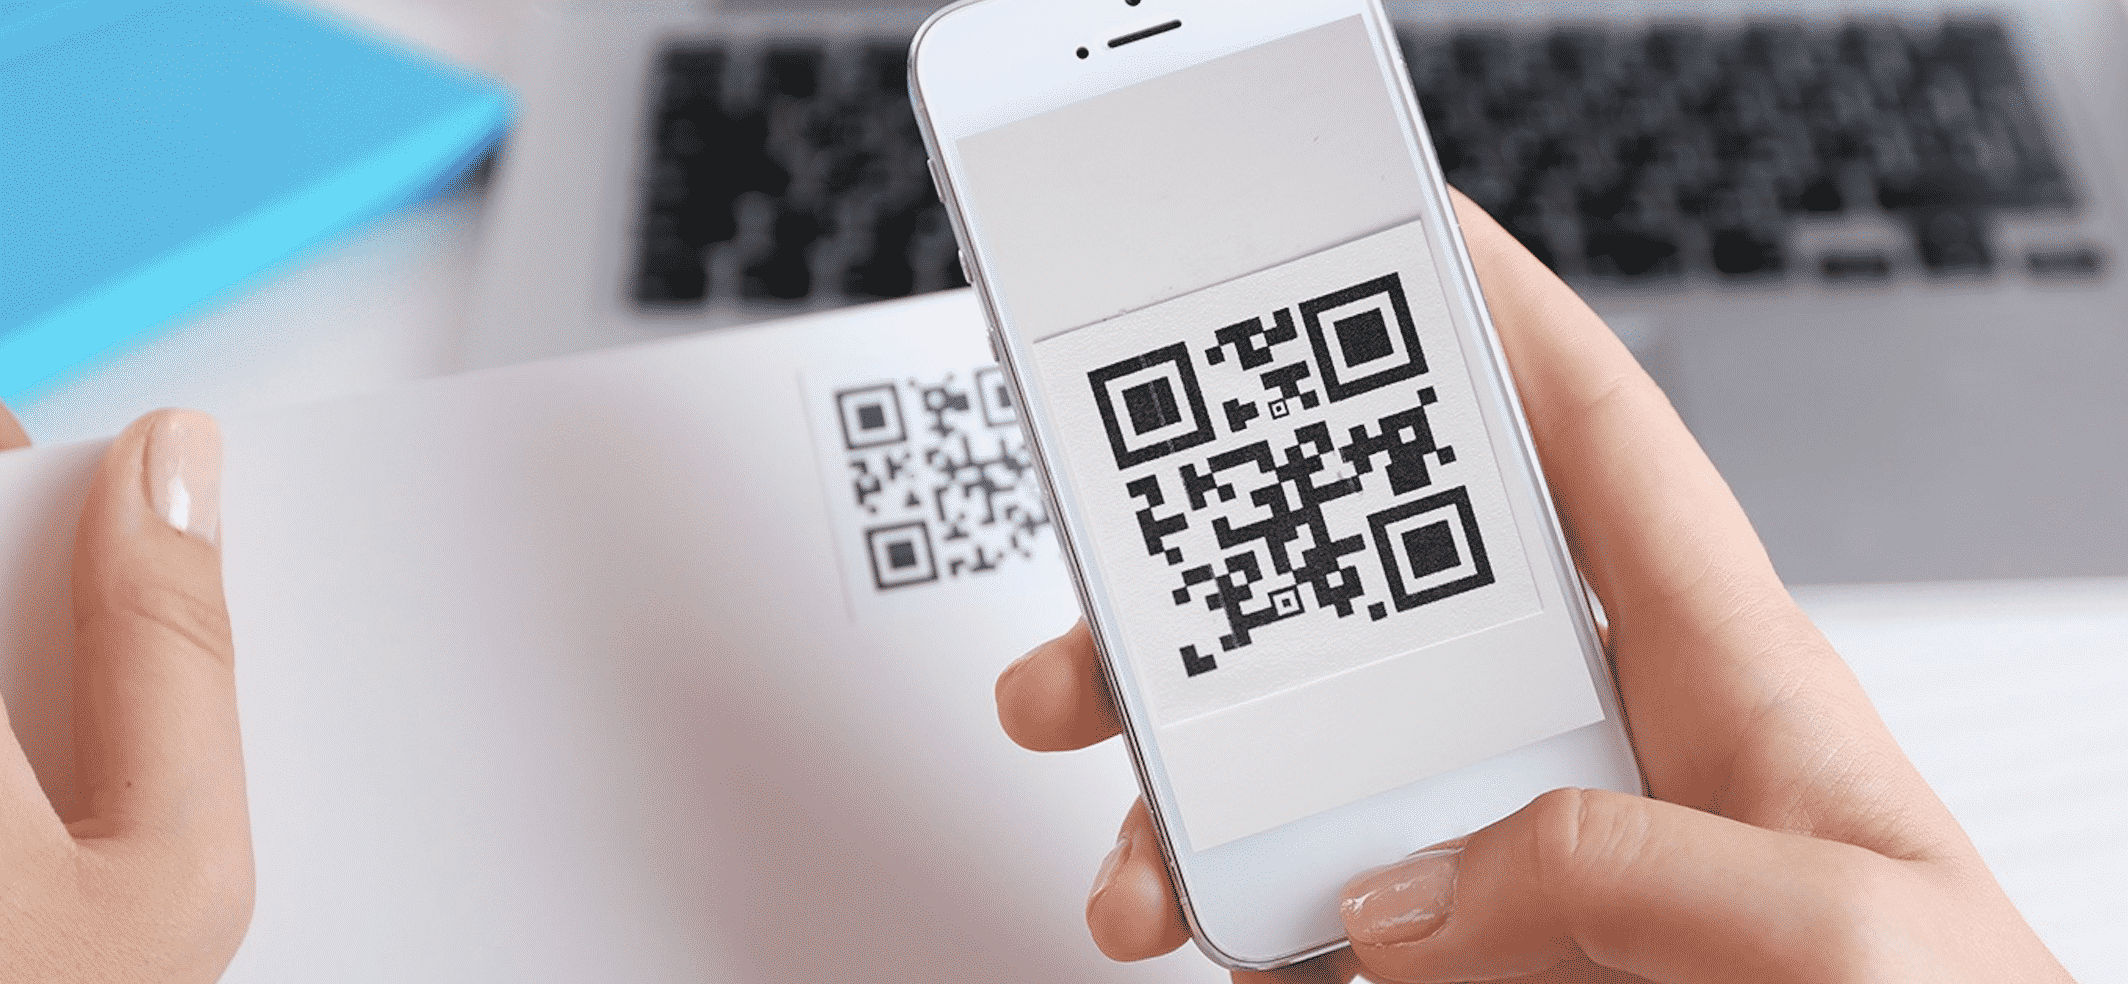 How To Use The Native QR Code Reader On iOS Devices